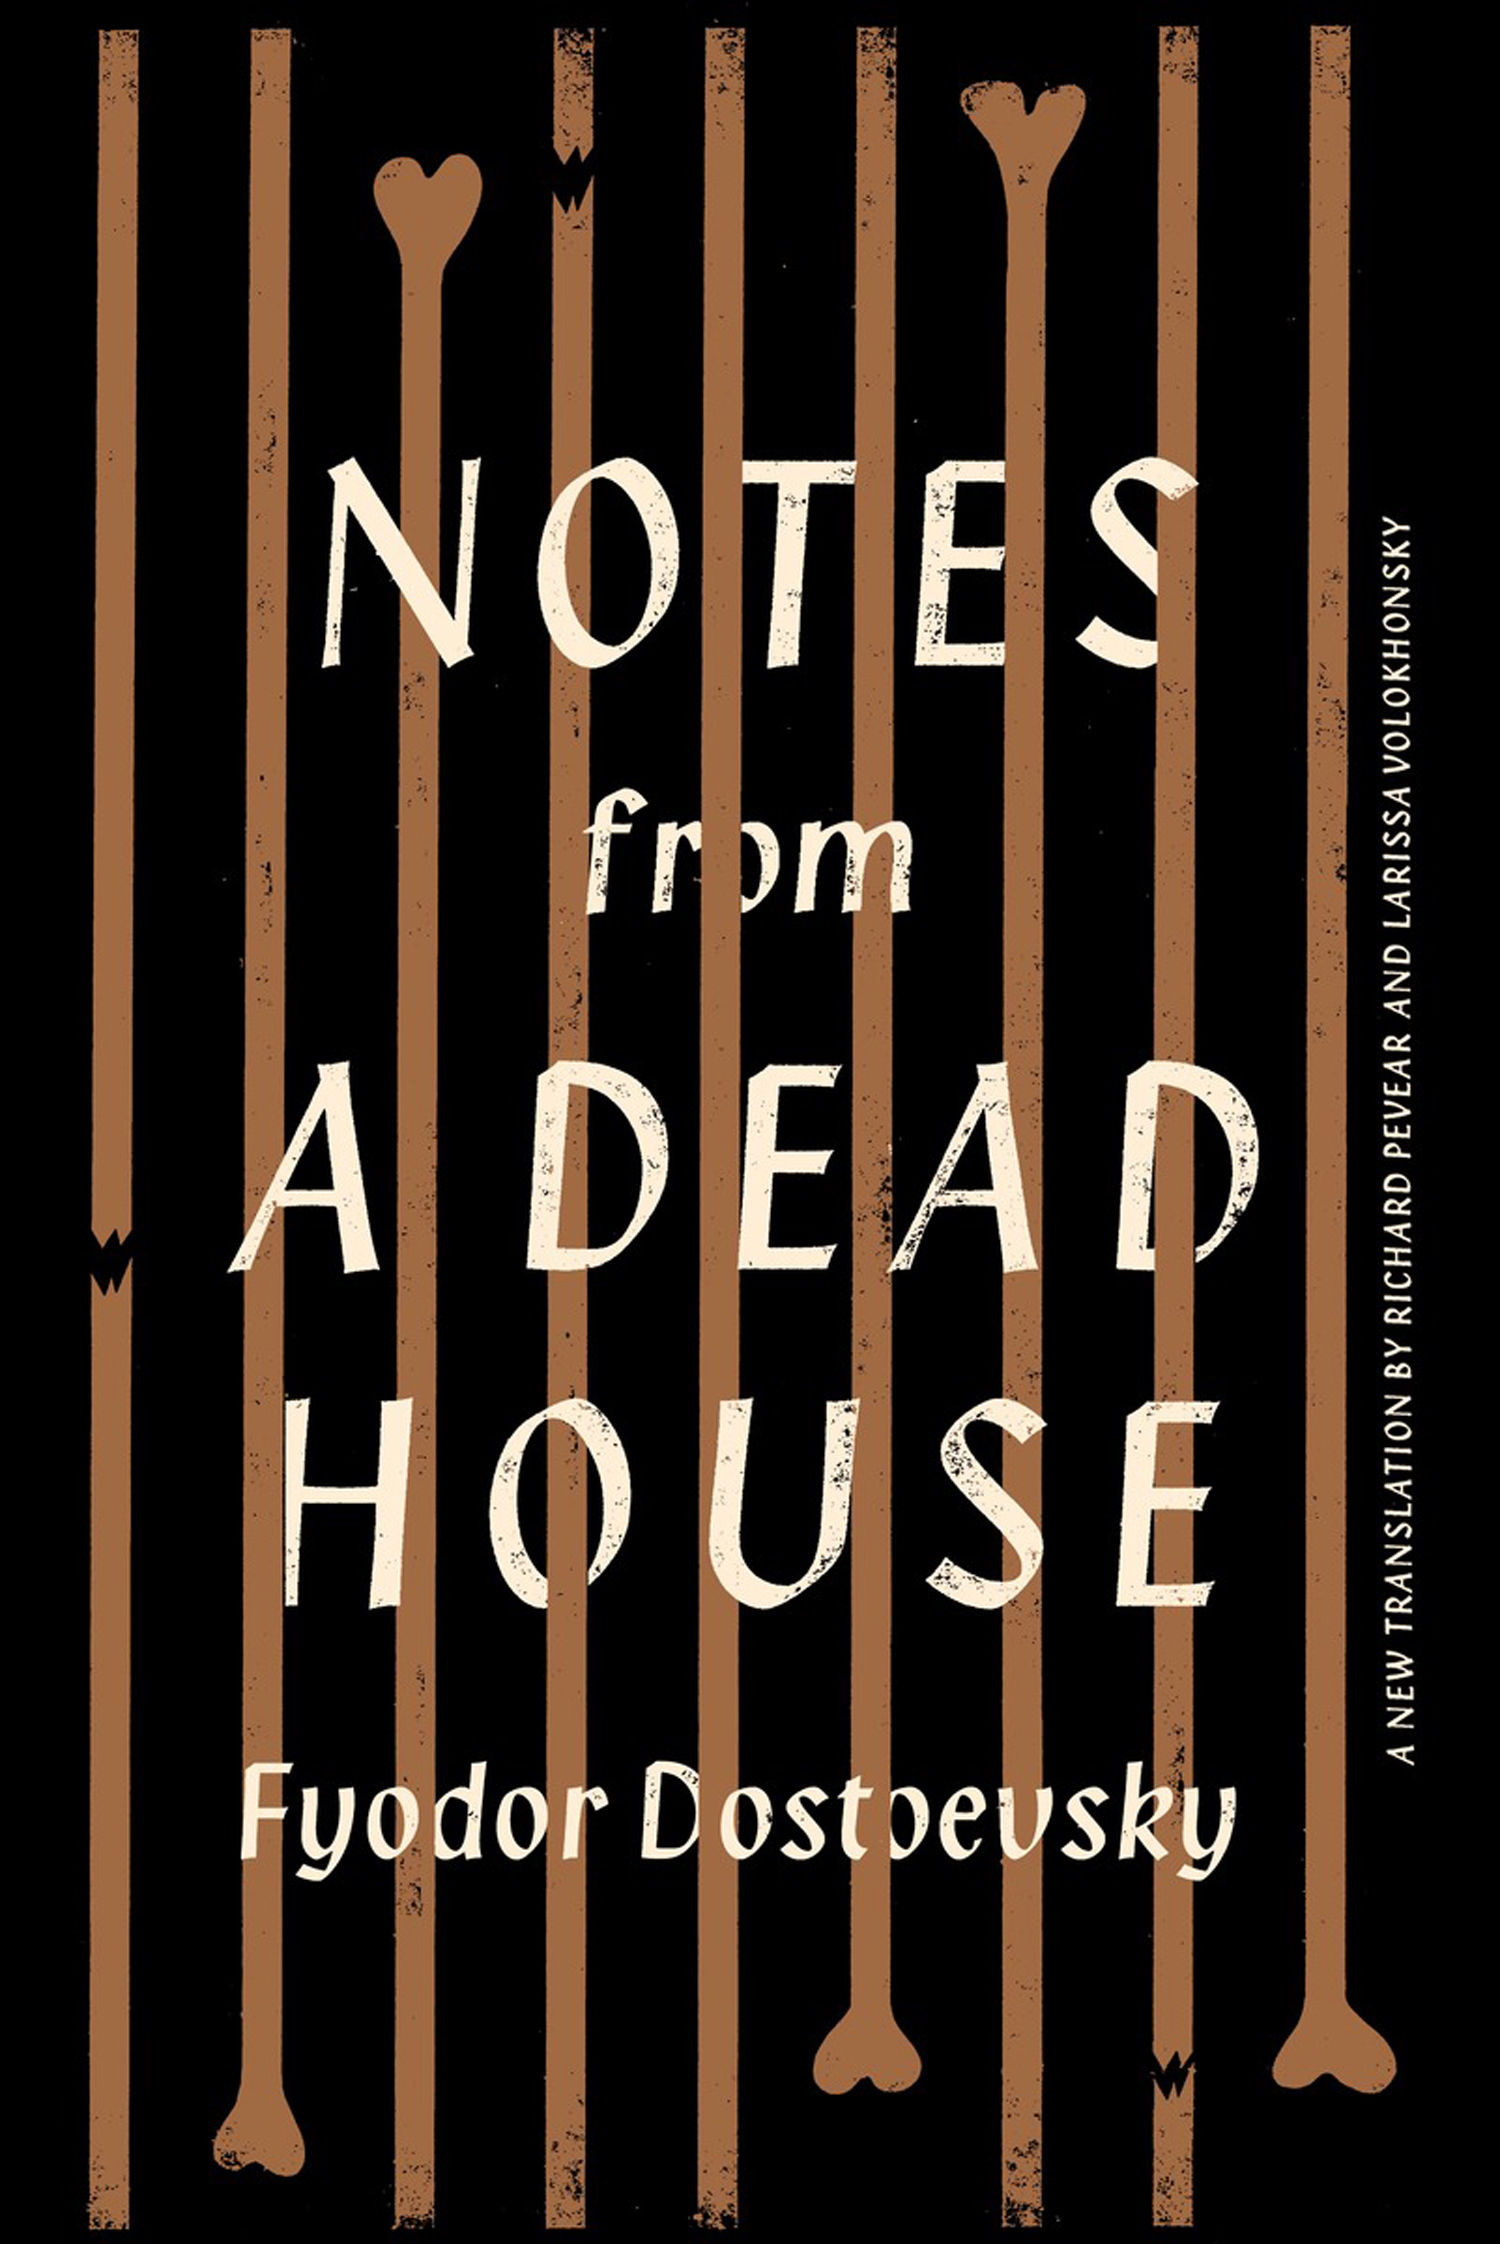 a review of the house of the dead fyodor mikhaylovich dostoyevsky The house of the dead by fyodor dostoyevsky document for the house of the dead by fyodor dostoyevsky is available in various format such as pdf, doc and epub which you can directly download.